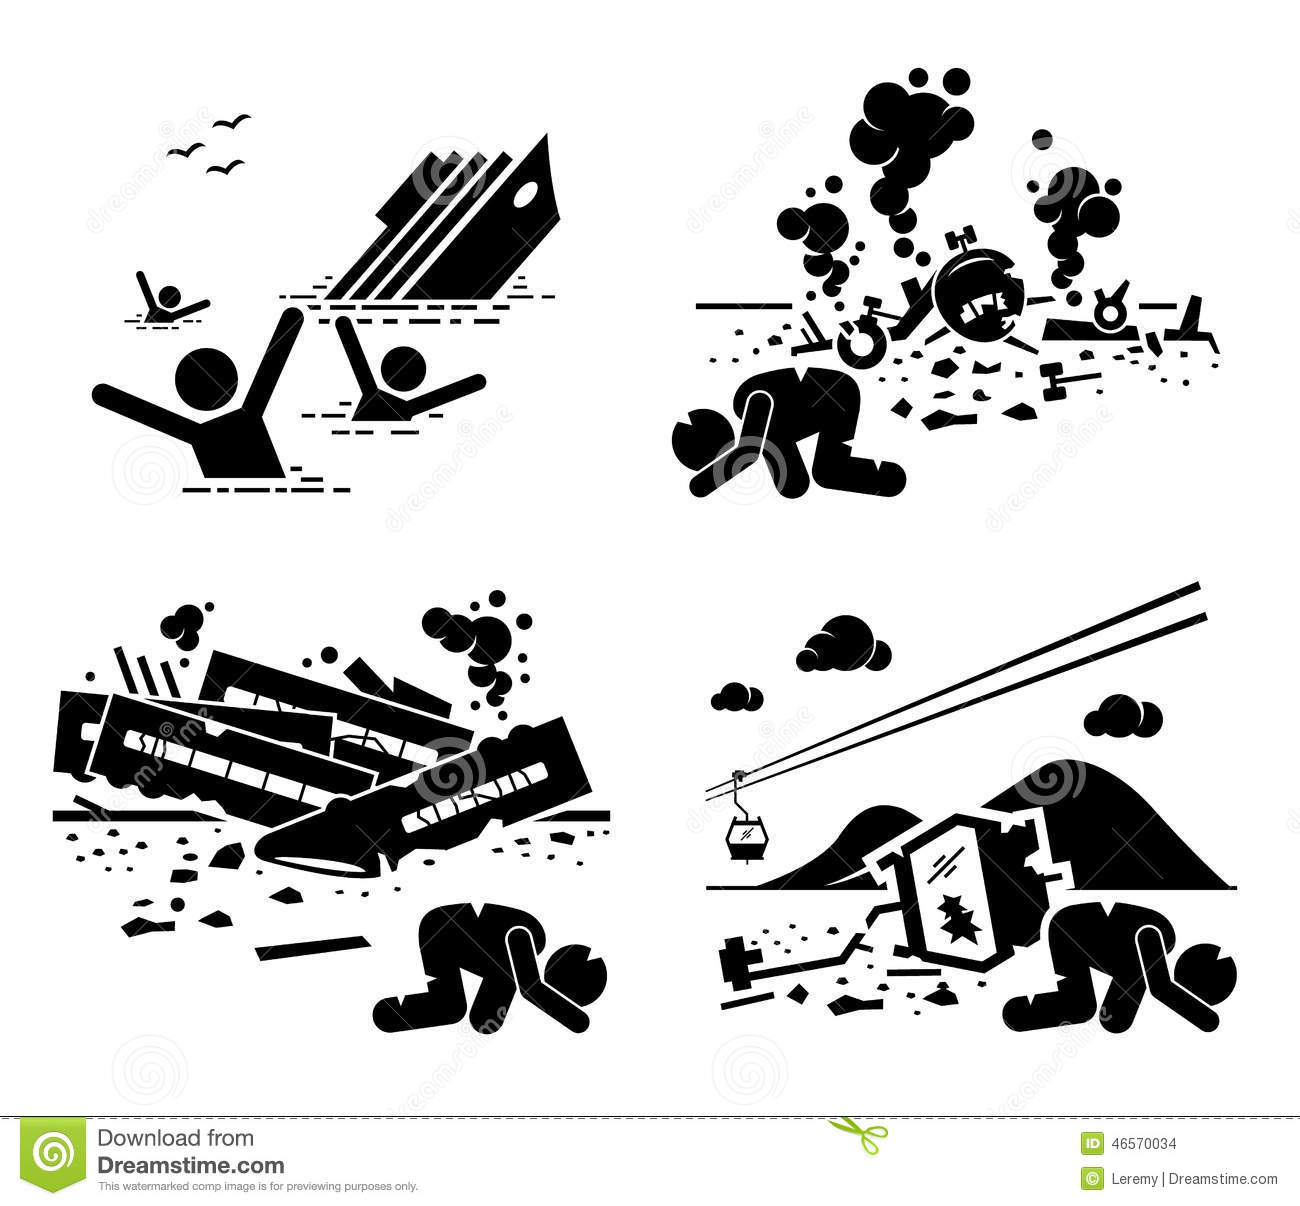 Disaster Accident Tragedy Ship Plane Train Cable Car